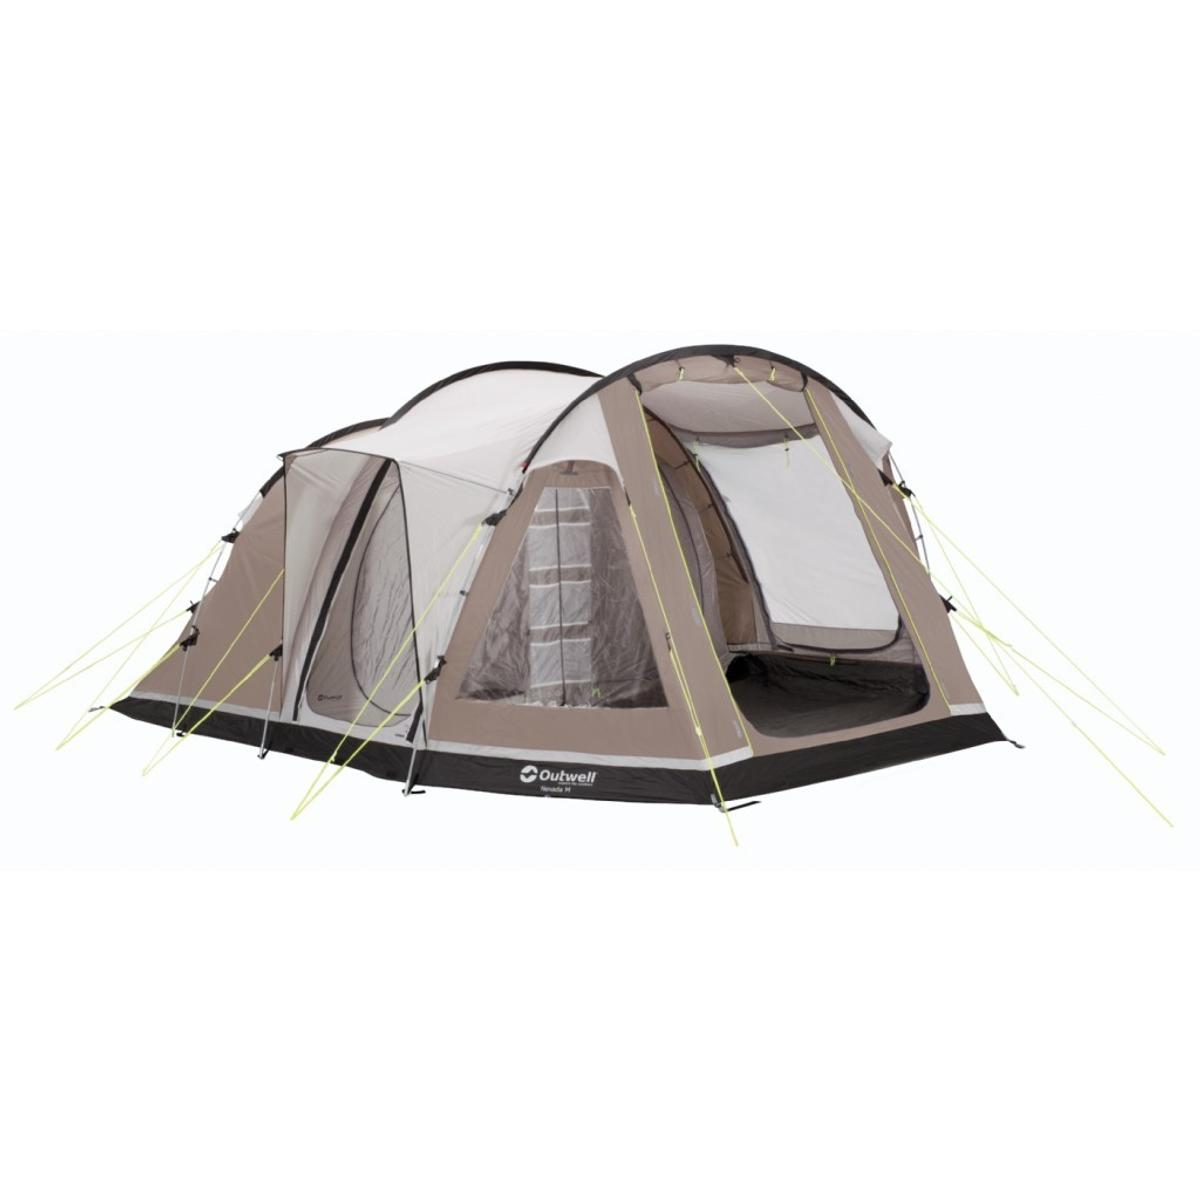 reputable site 1aaf6 6caf9 Outwell Nevada M 5 man tent, awning etc